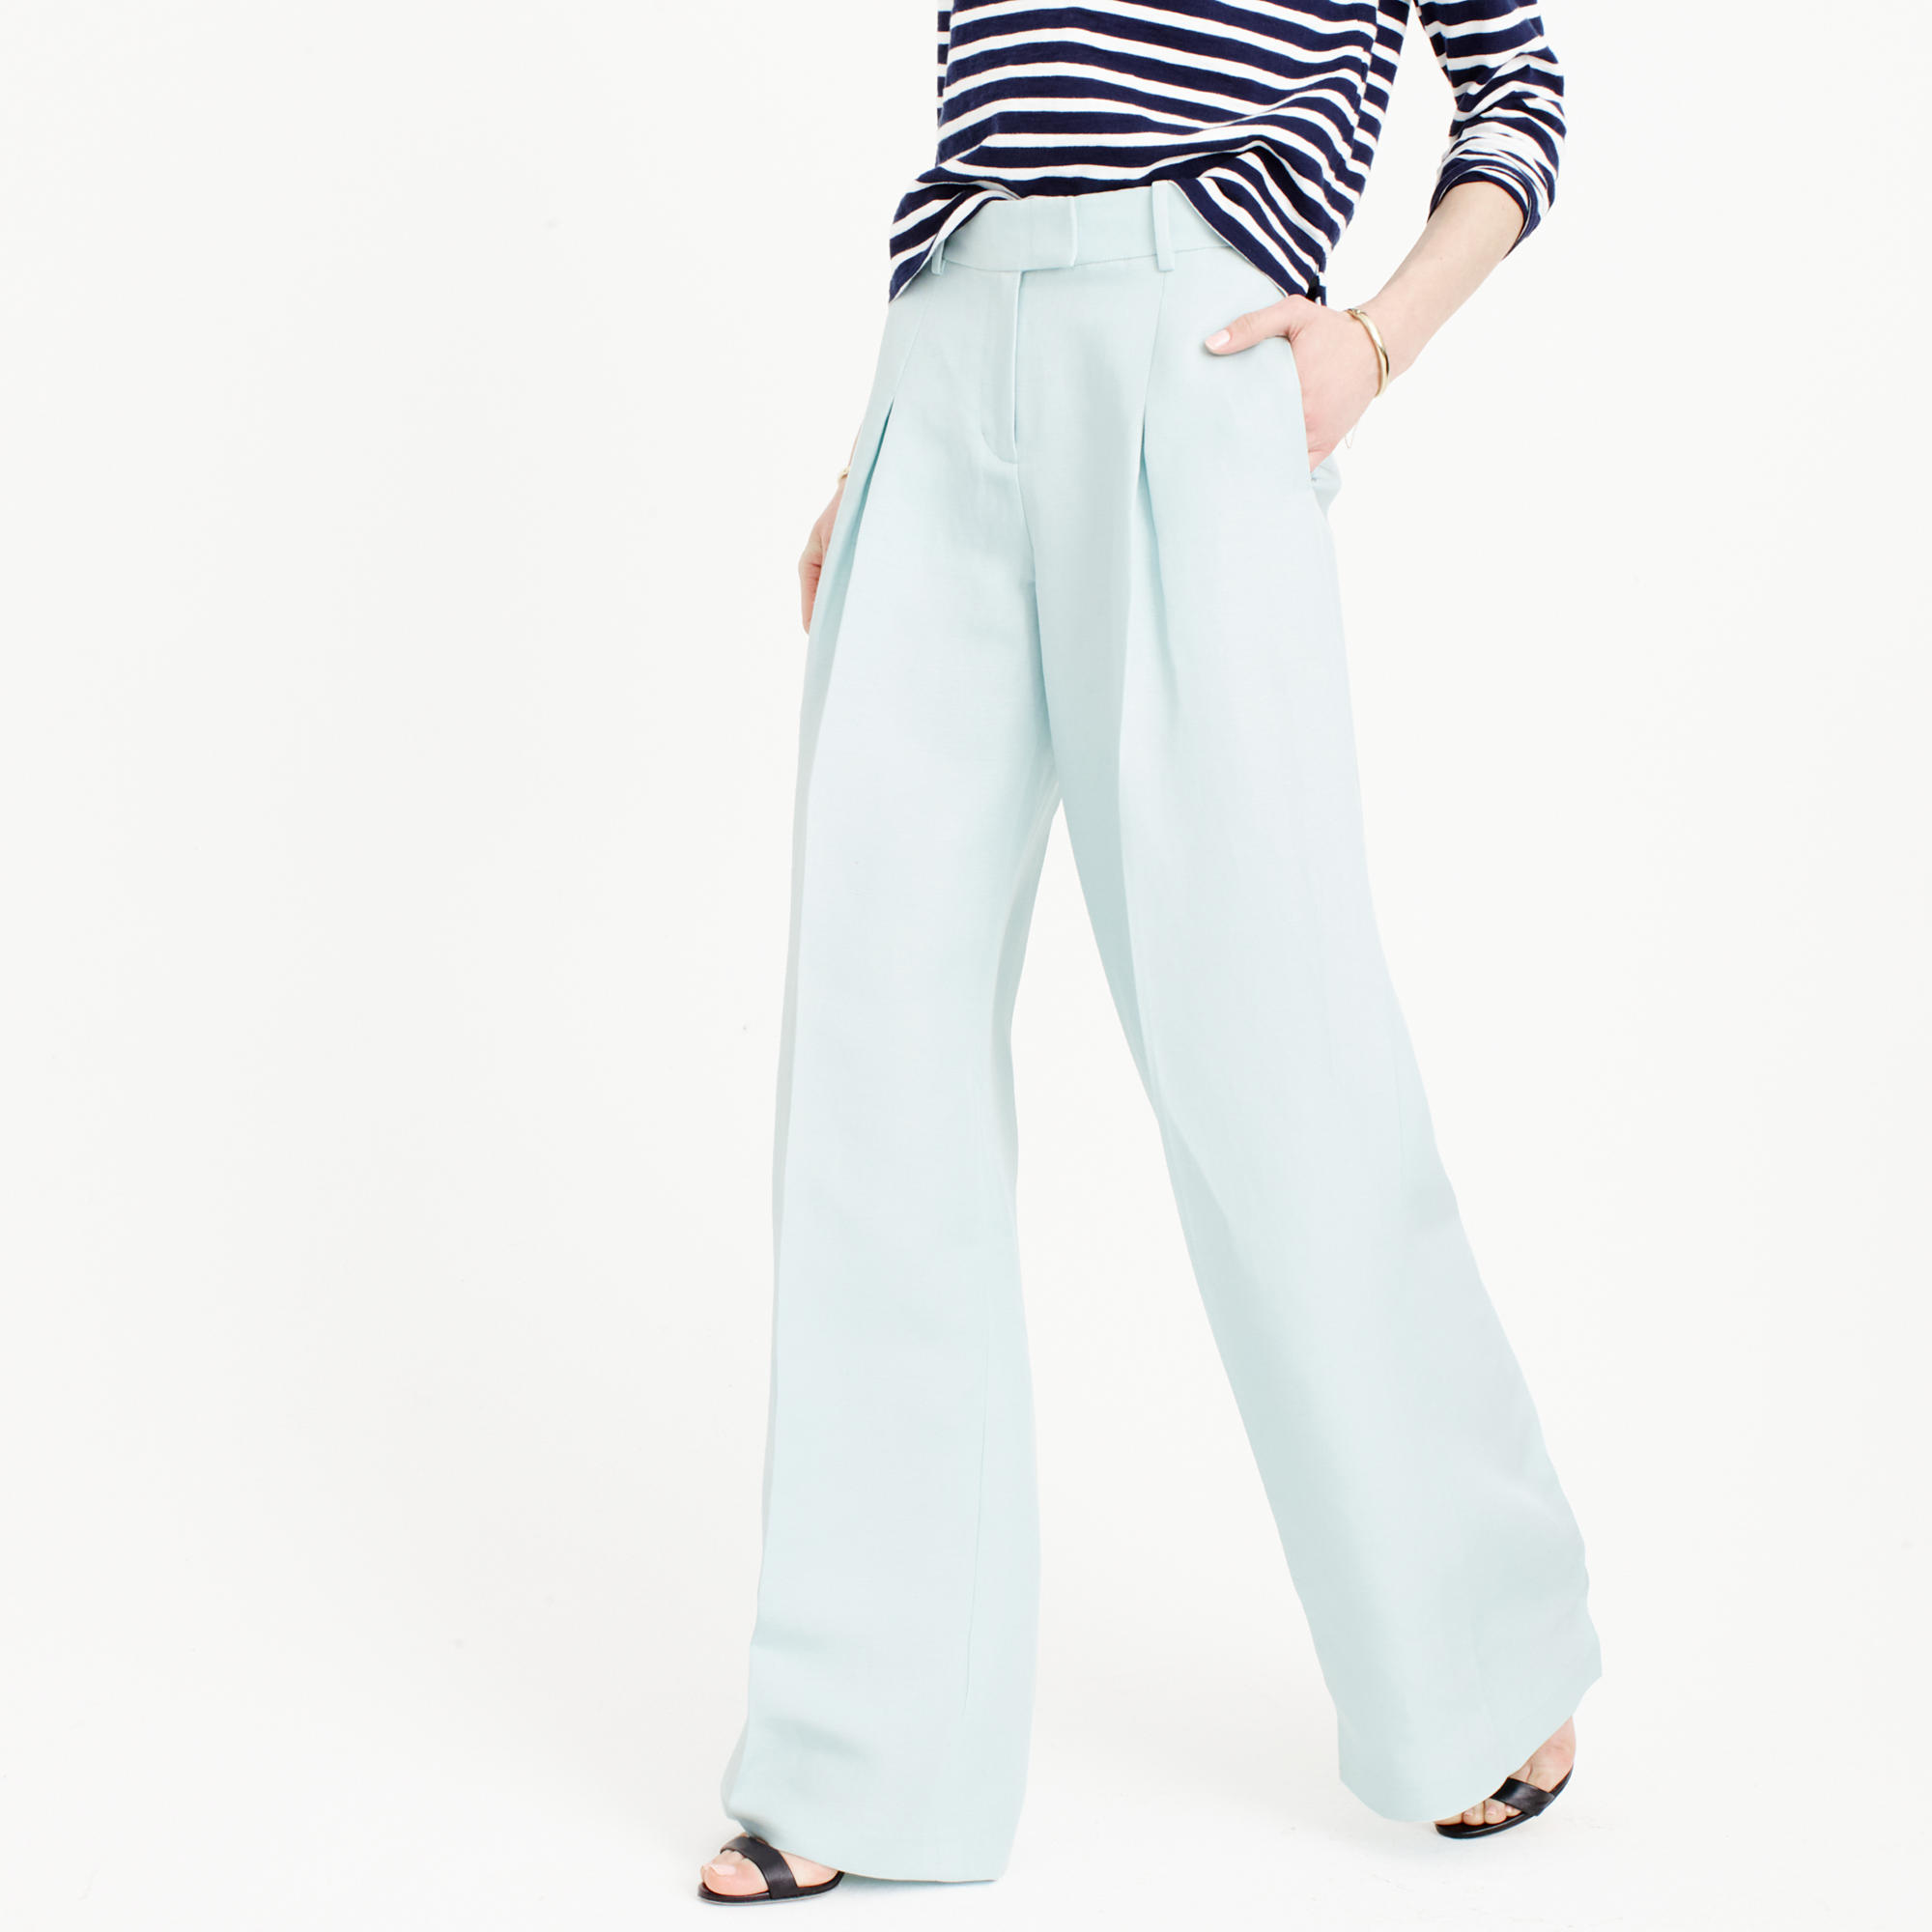 J.crew Collection Wide-leg Pant In Silk-linen in Blue | Lyst